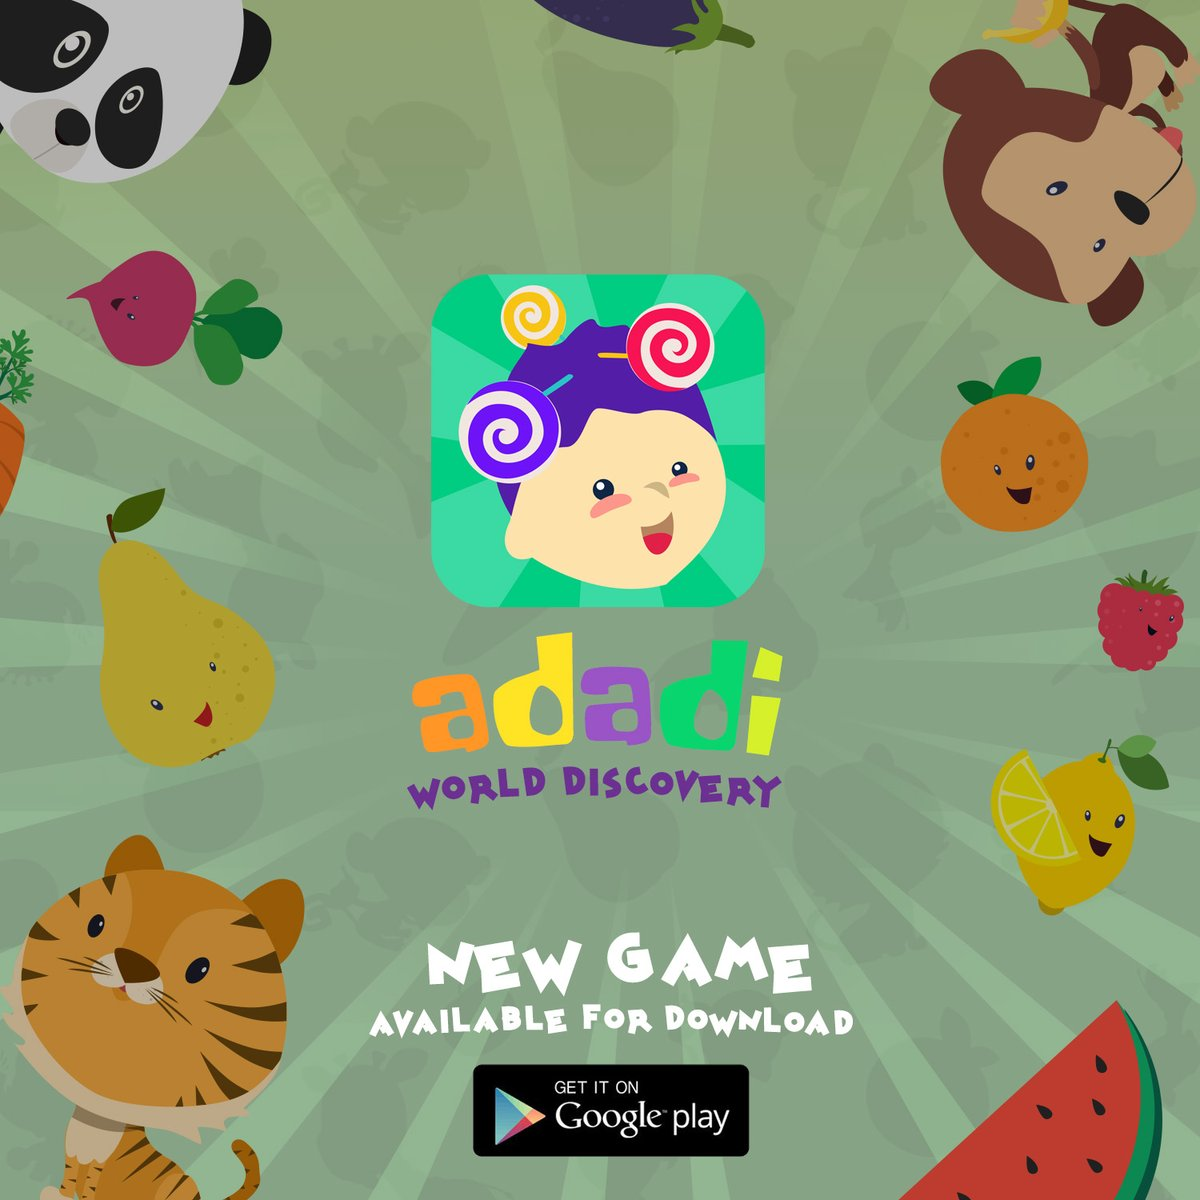 Adadi-World Discovery  Learn fun things with your kids. Available now for download on Google Play. Enjoy and If you love it share the love!  #NewGameApp #MobileGames #NewMobileGame #Games #IndieDeveloper #IndieGameDeveloper #AdadiGameApp #LearningGame #LearningGameApp #FunGames pic.twitter.com/ln4wMEtdPW